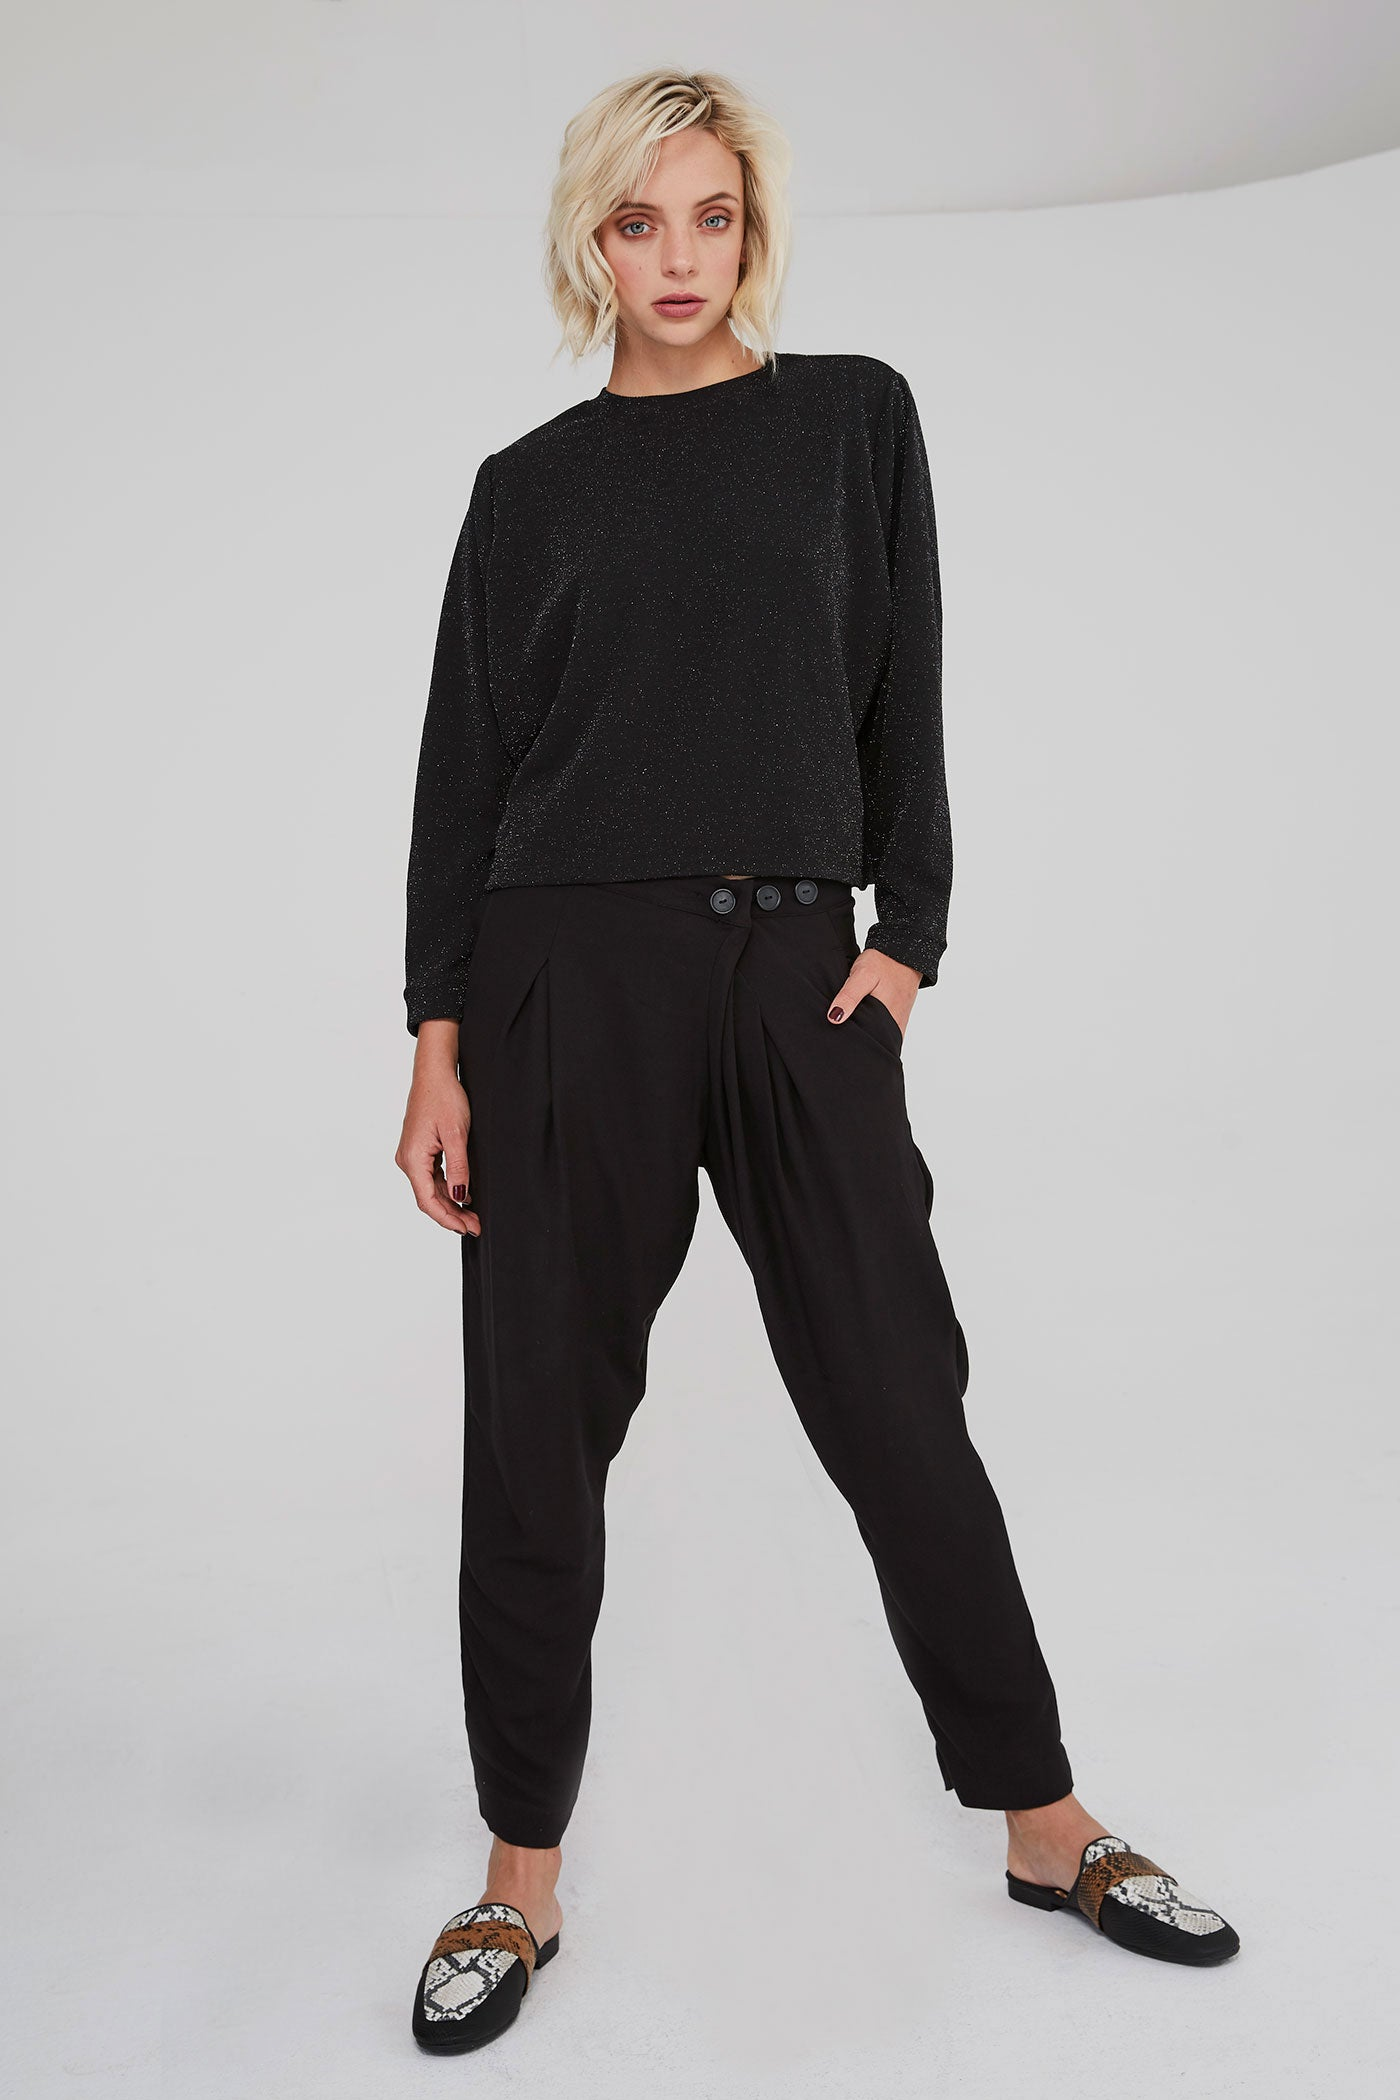 Mumbai Pants - Black